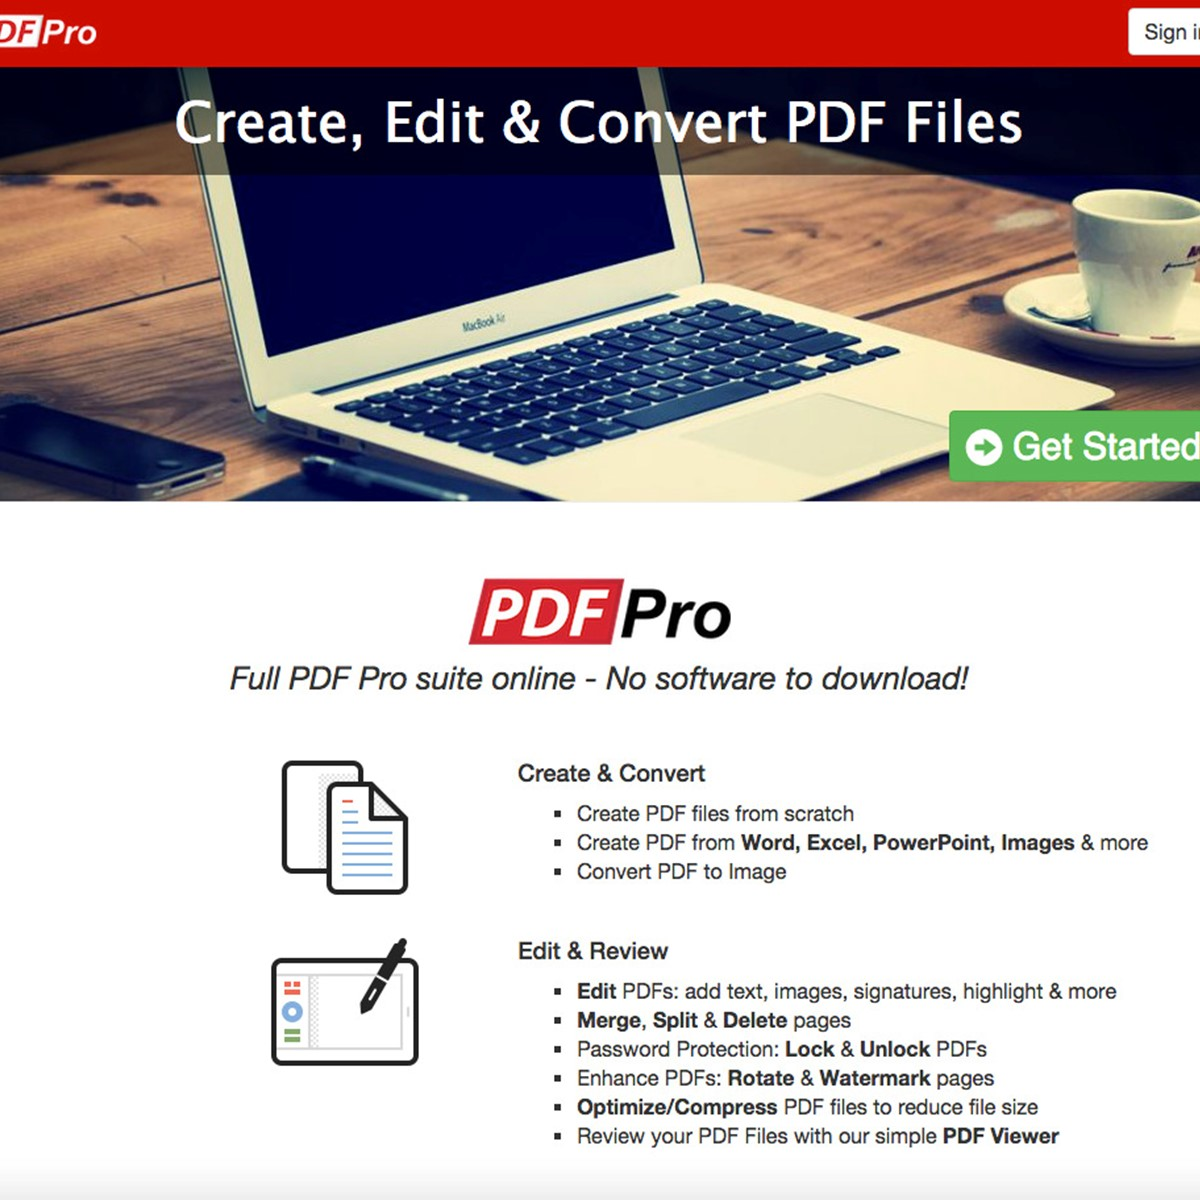 PDF Pro Alternatives and Similar Websites and Apps